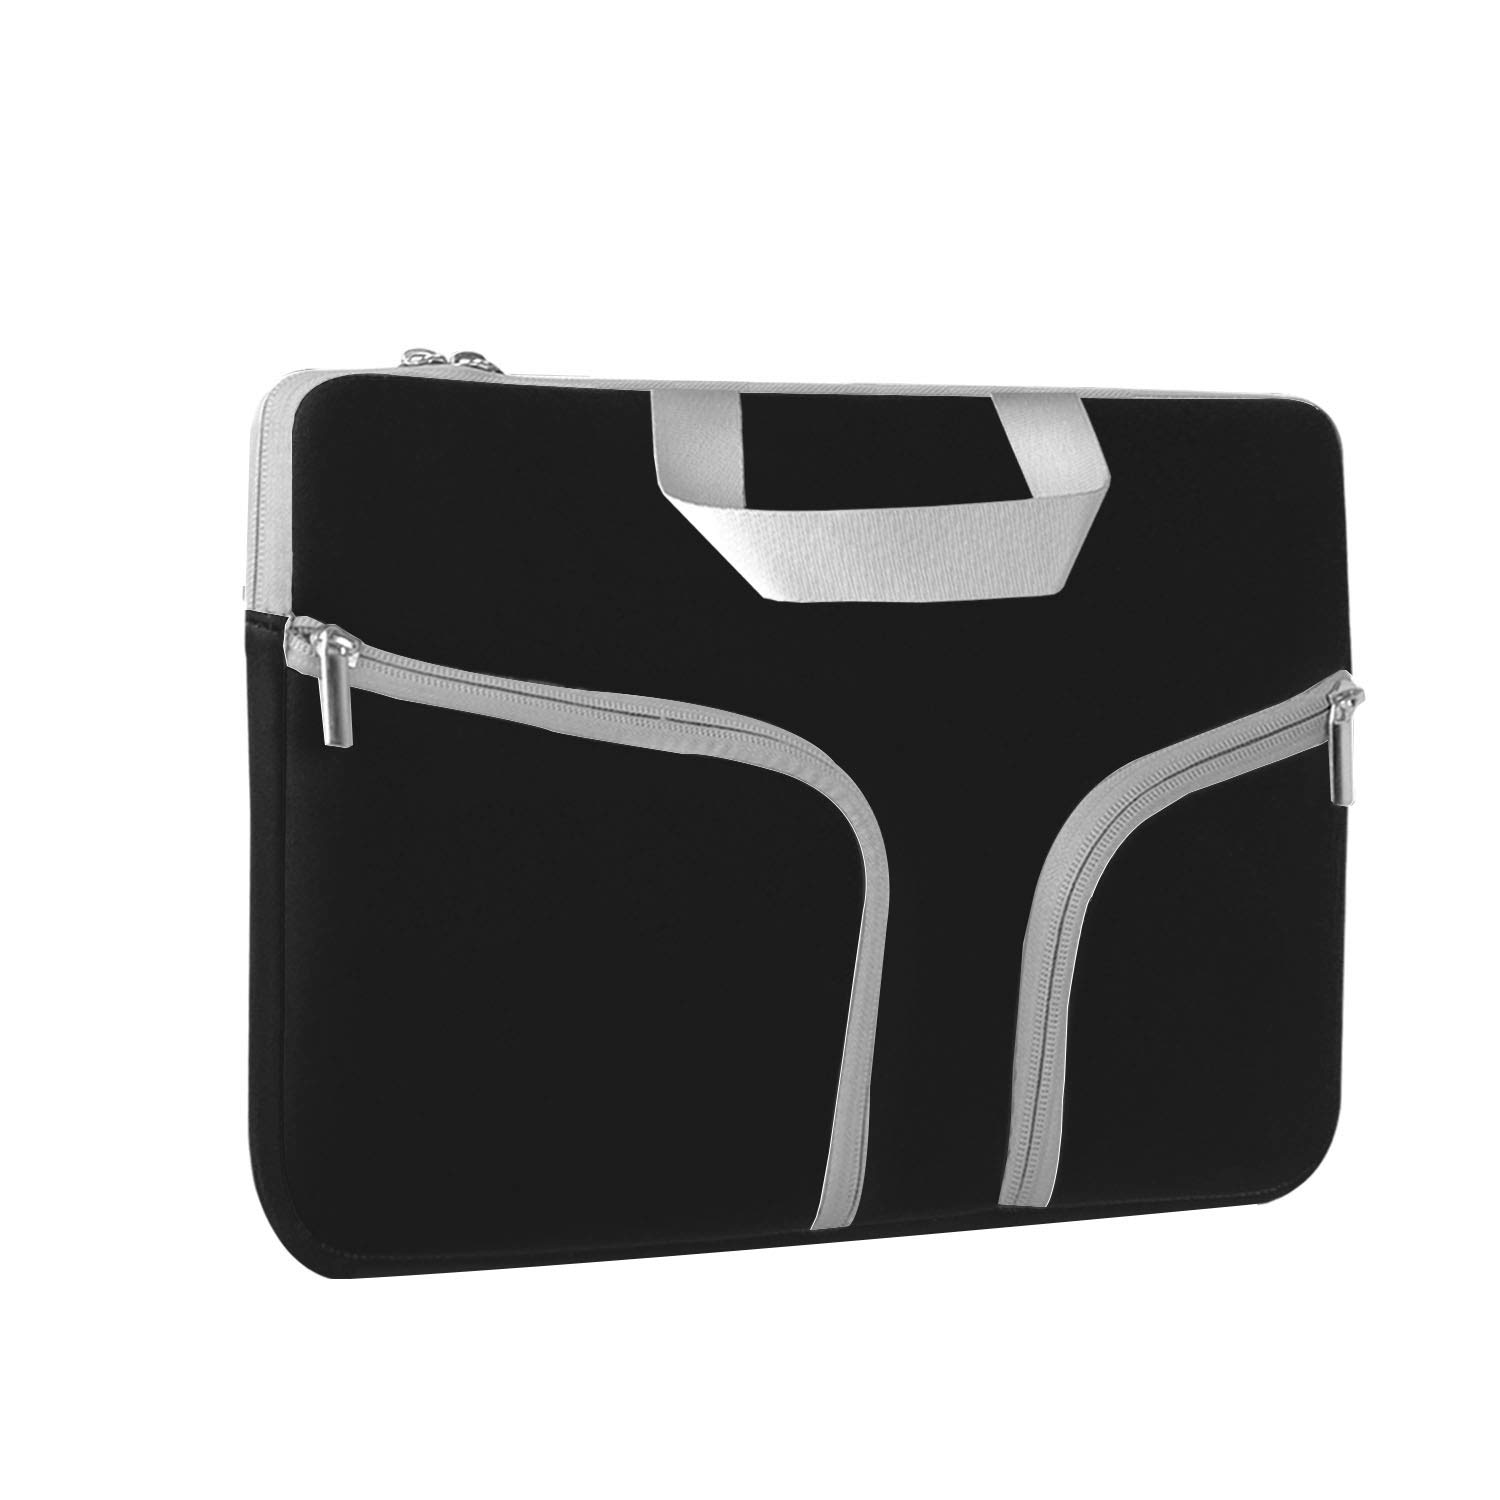 Chromebook Case, HESTECH 13-13.3 Neoprene Laptop Sleeve Case with Handle for 13'' MacBook Air/Pro iPad Pro 12.9 Surface Book Pro3/Pro 4 Chromebook 13, Black by HESTECH